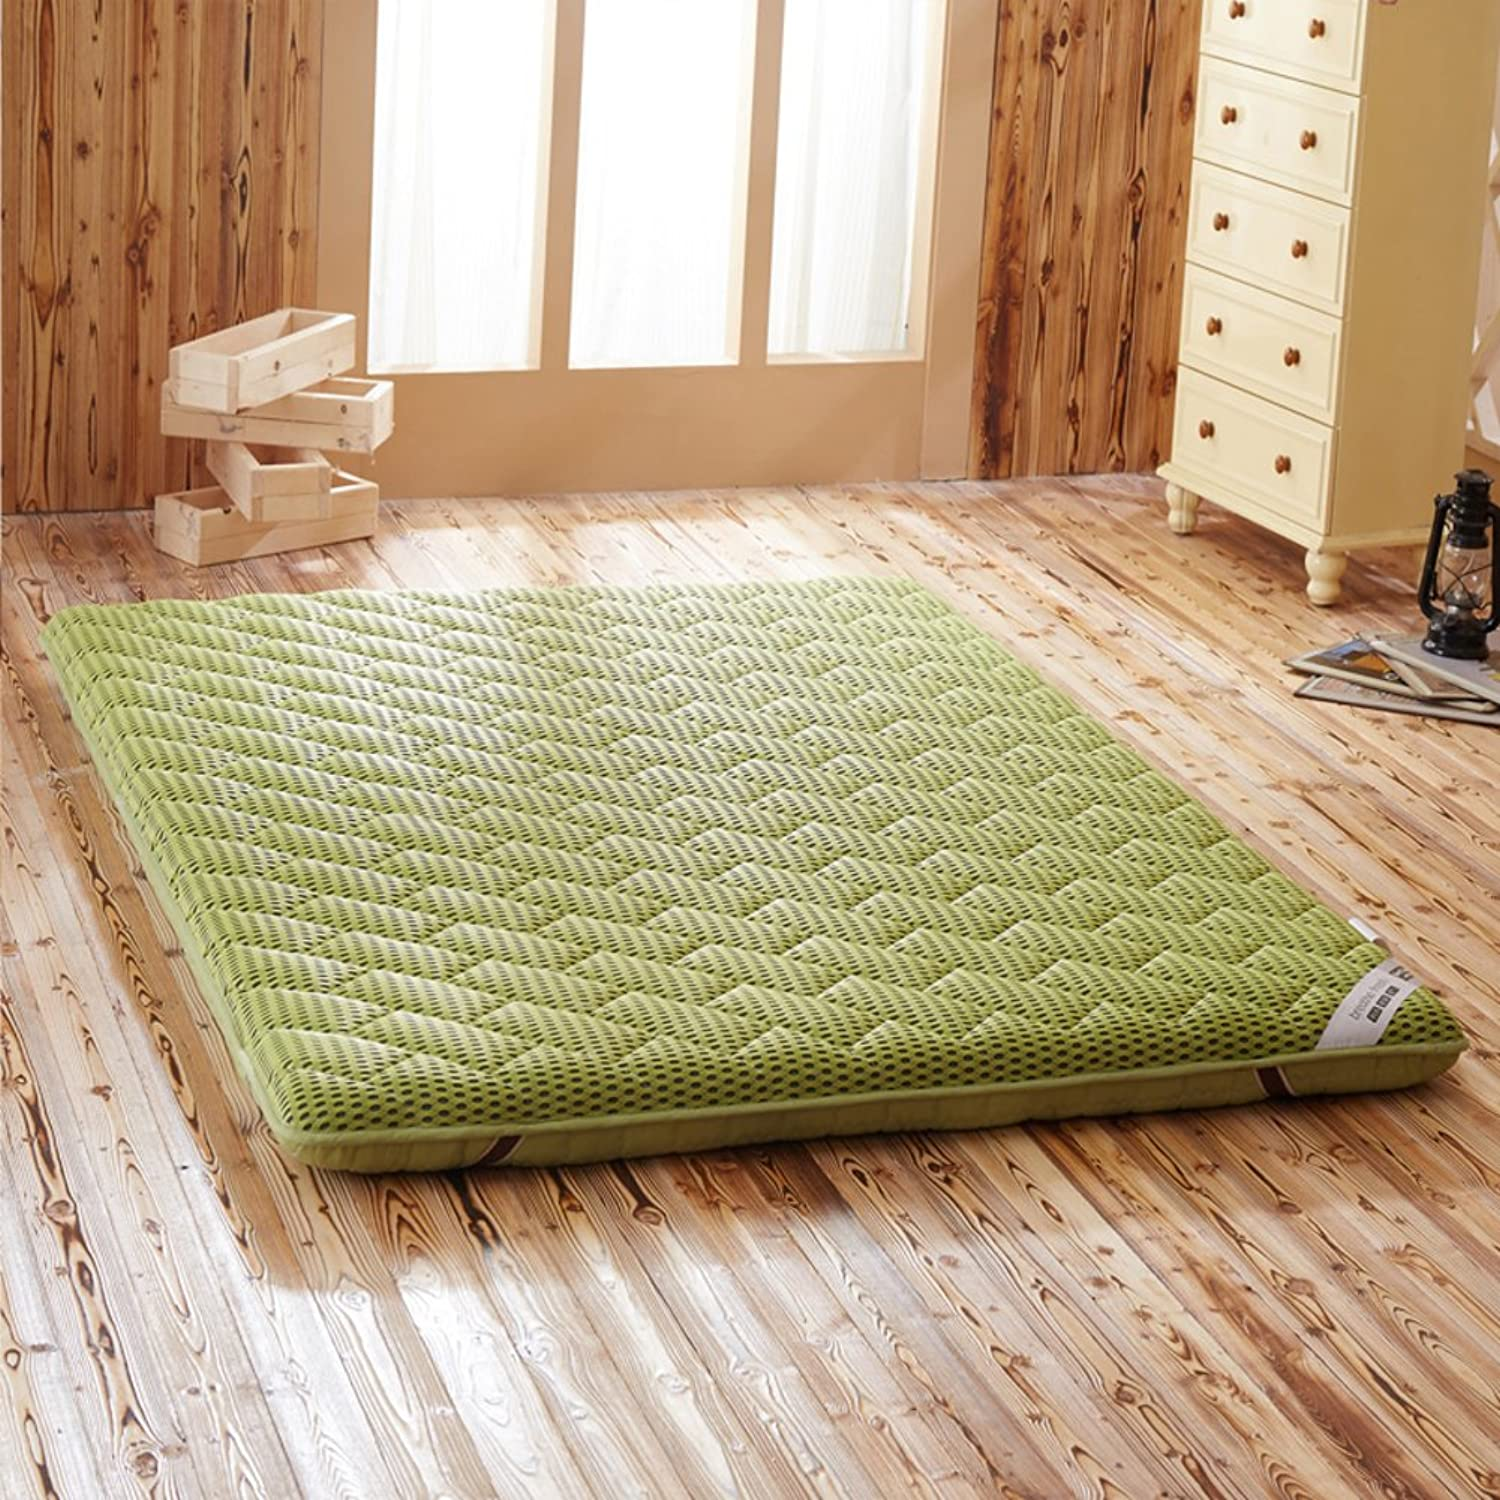 Breathable Mattress Pads,Polyester Mattress-Toppers,4 d Thicken Four Seasons Solid color Foldable Non-Slip Predect Spine Tatami Mattress-Green 100x200cm(39x79inch)